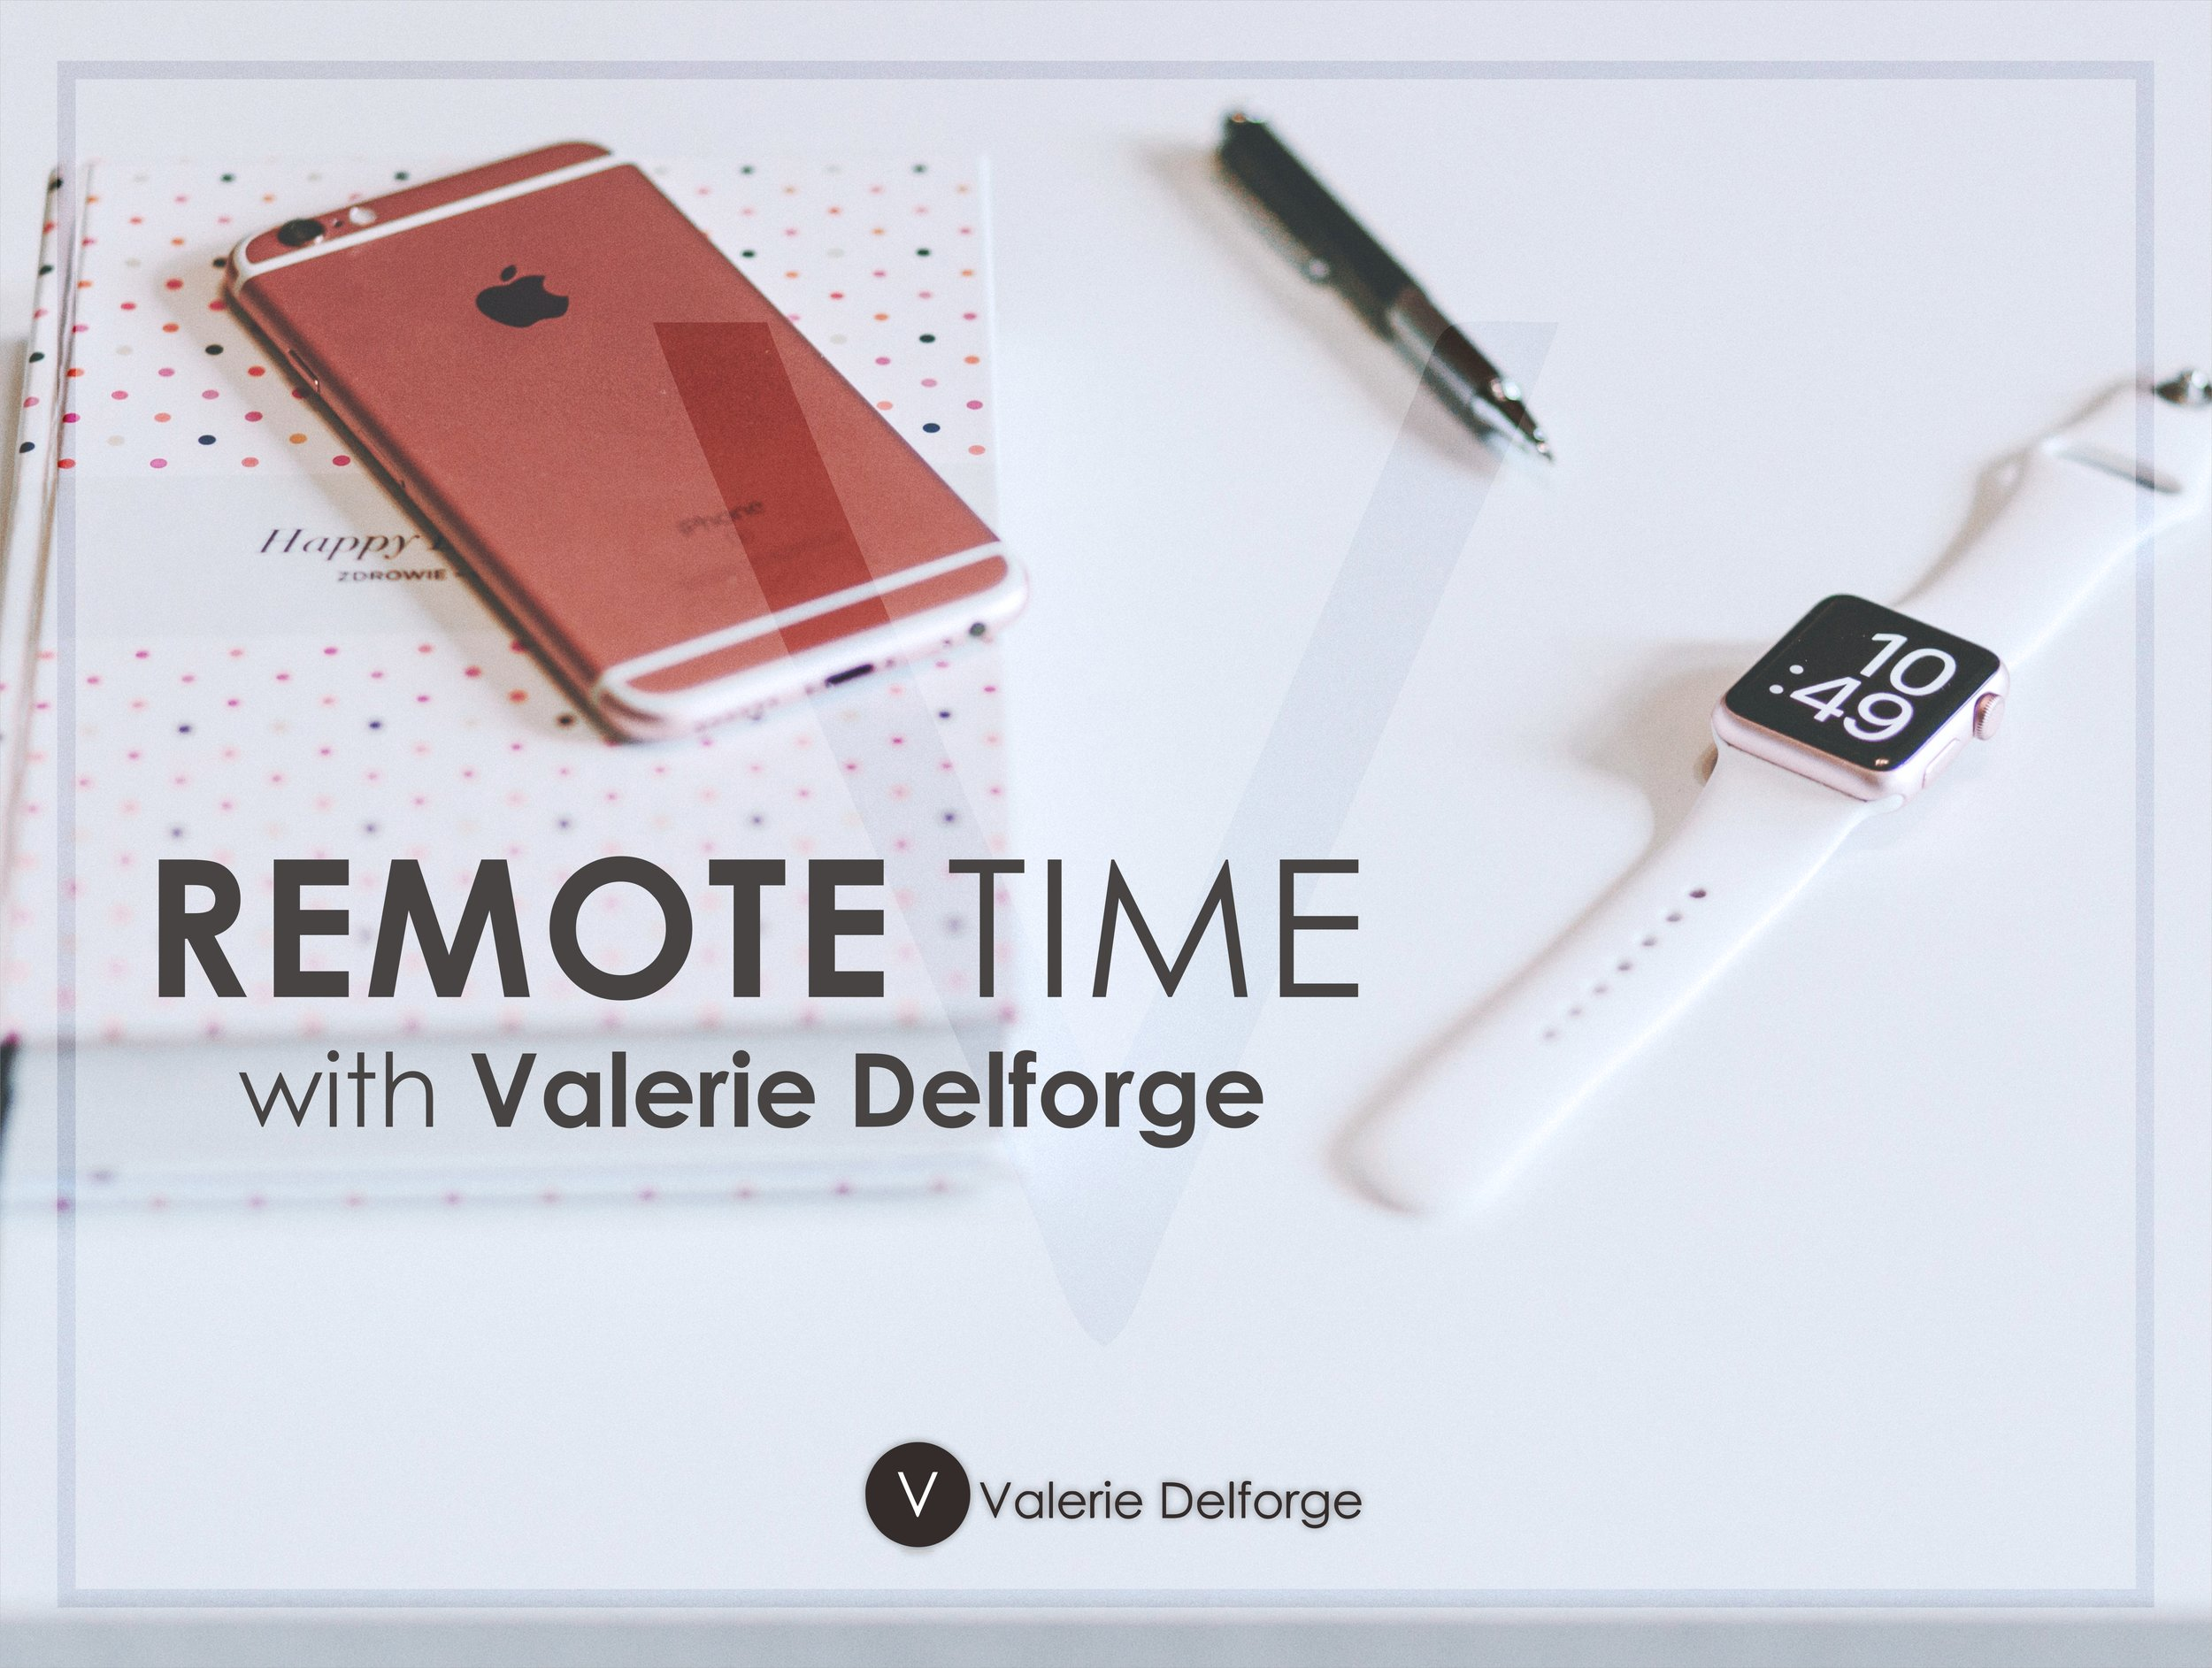 Remote time with Valerie Delforge